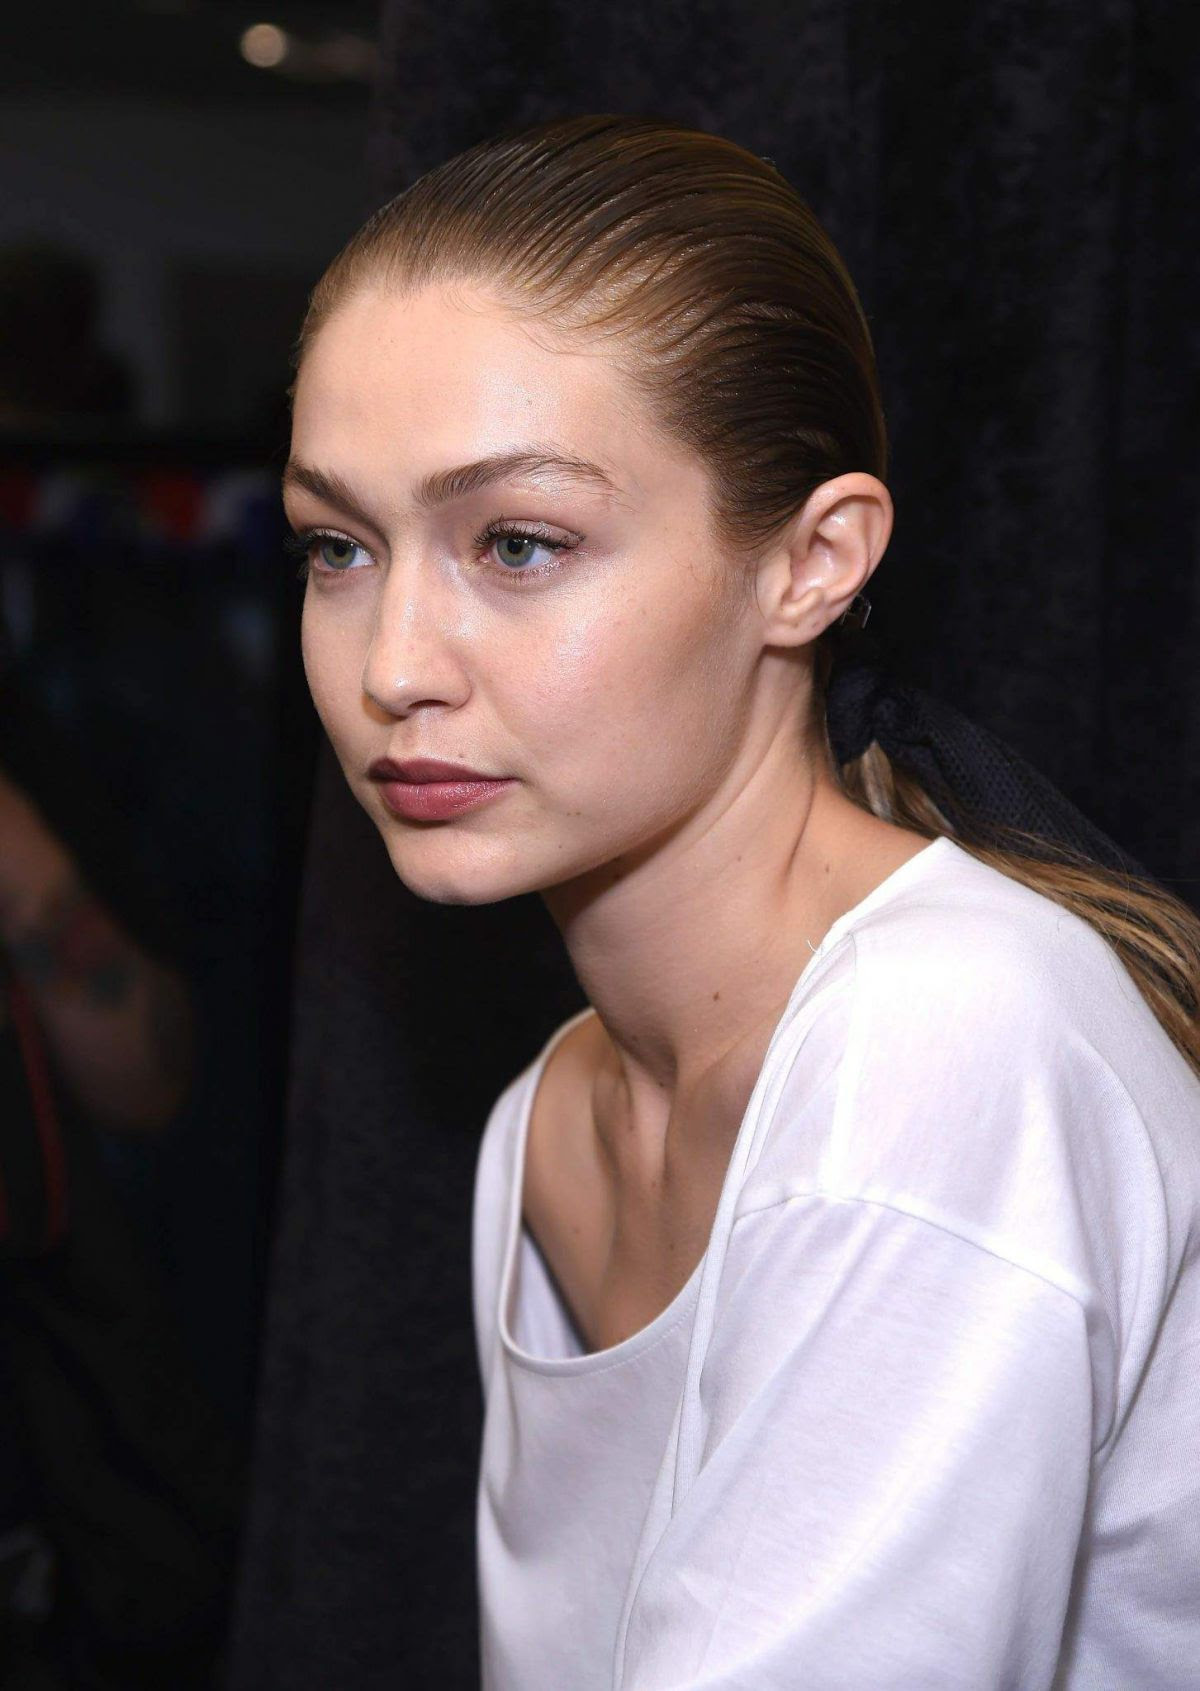 GIGI HADID at Prabal Gurung Fashion Show at NYFW in New York 09/10/2017